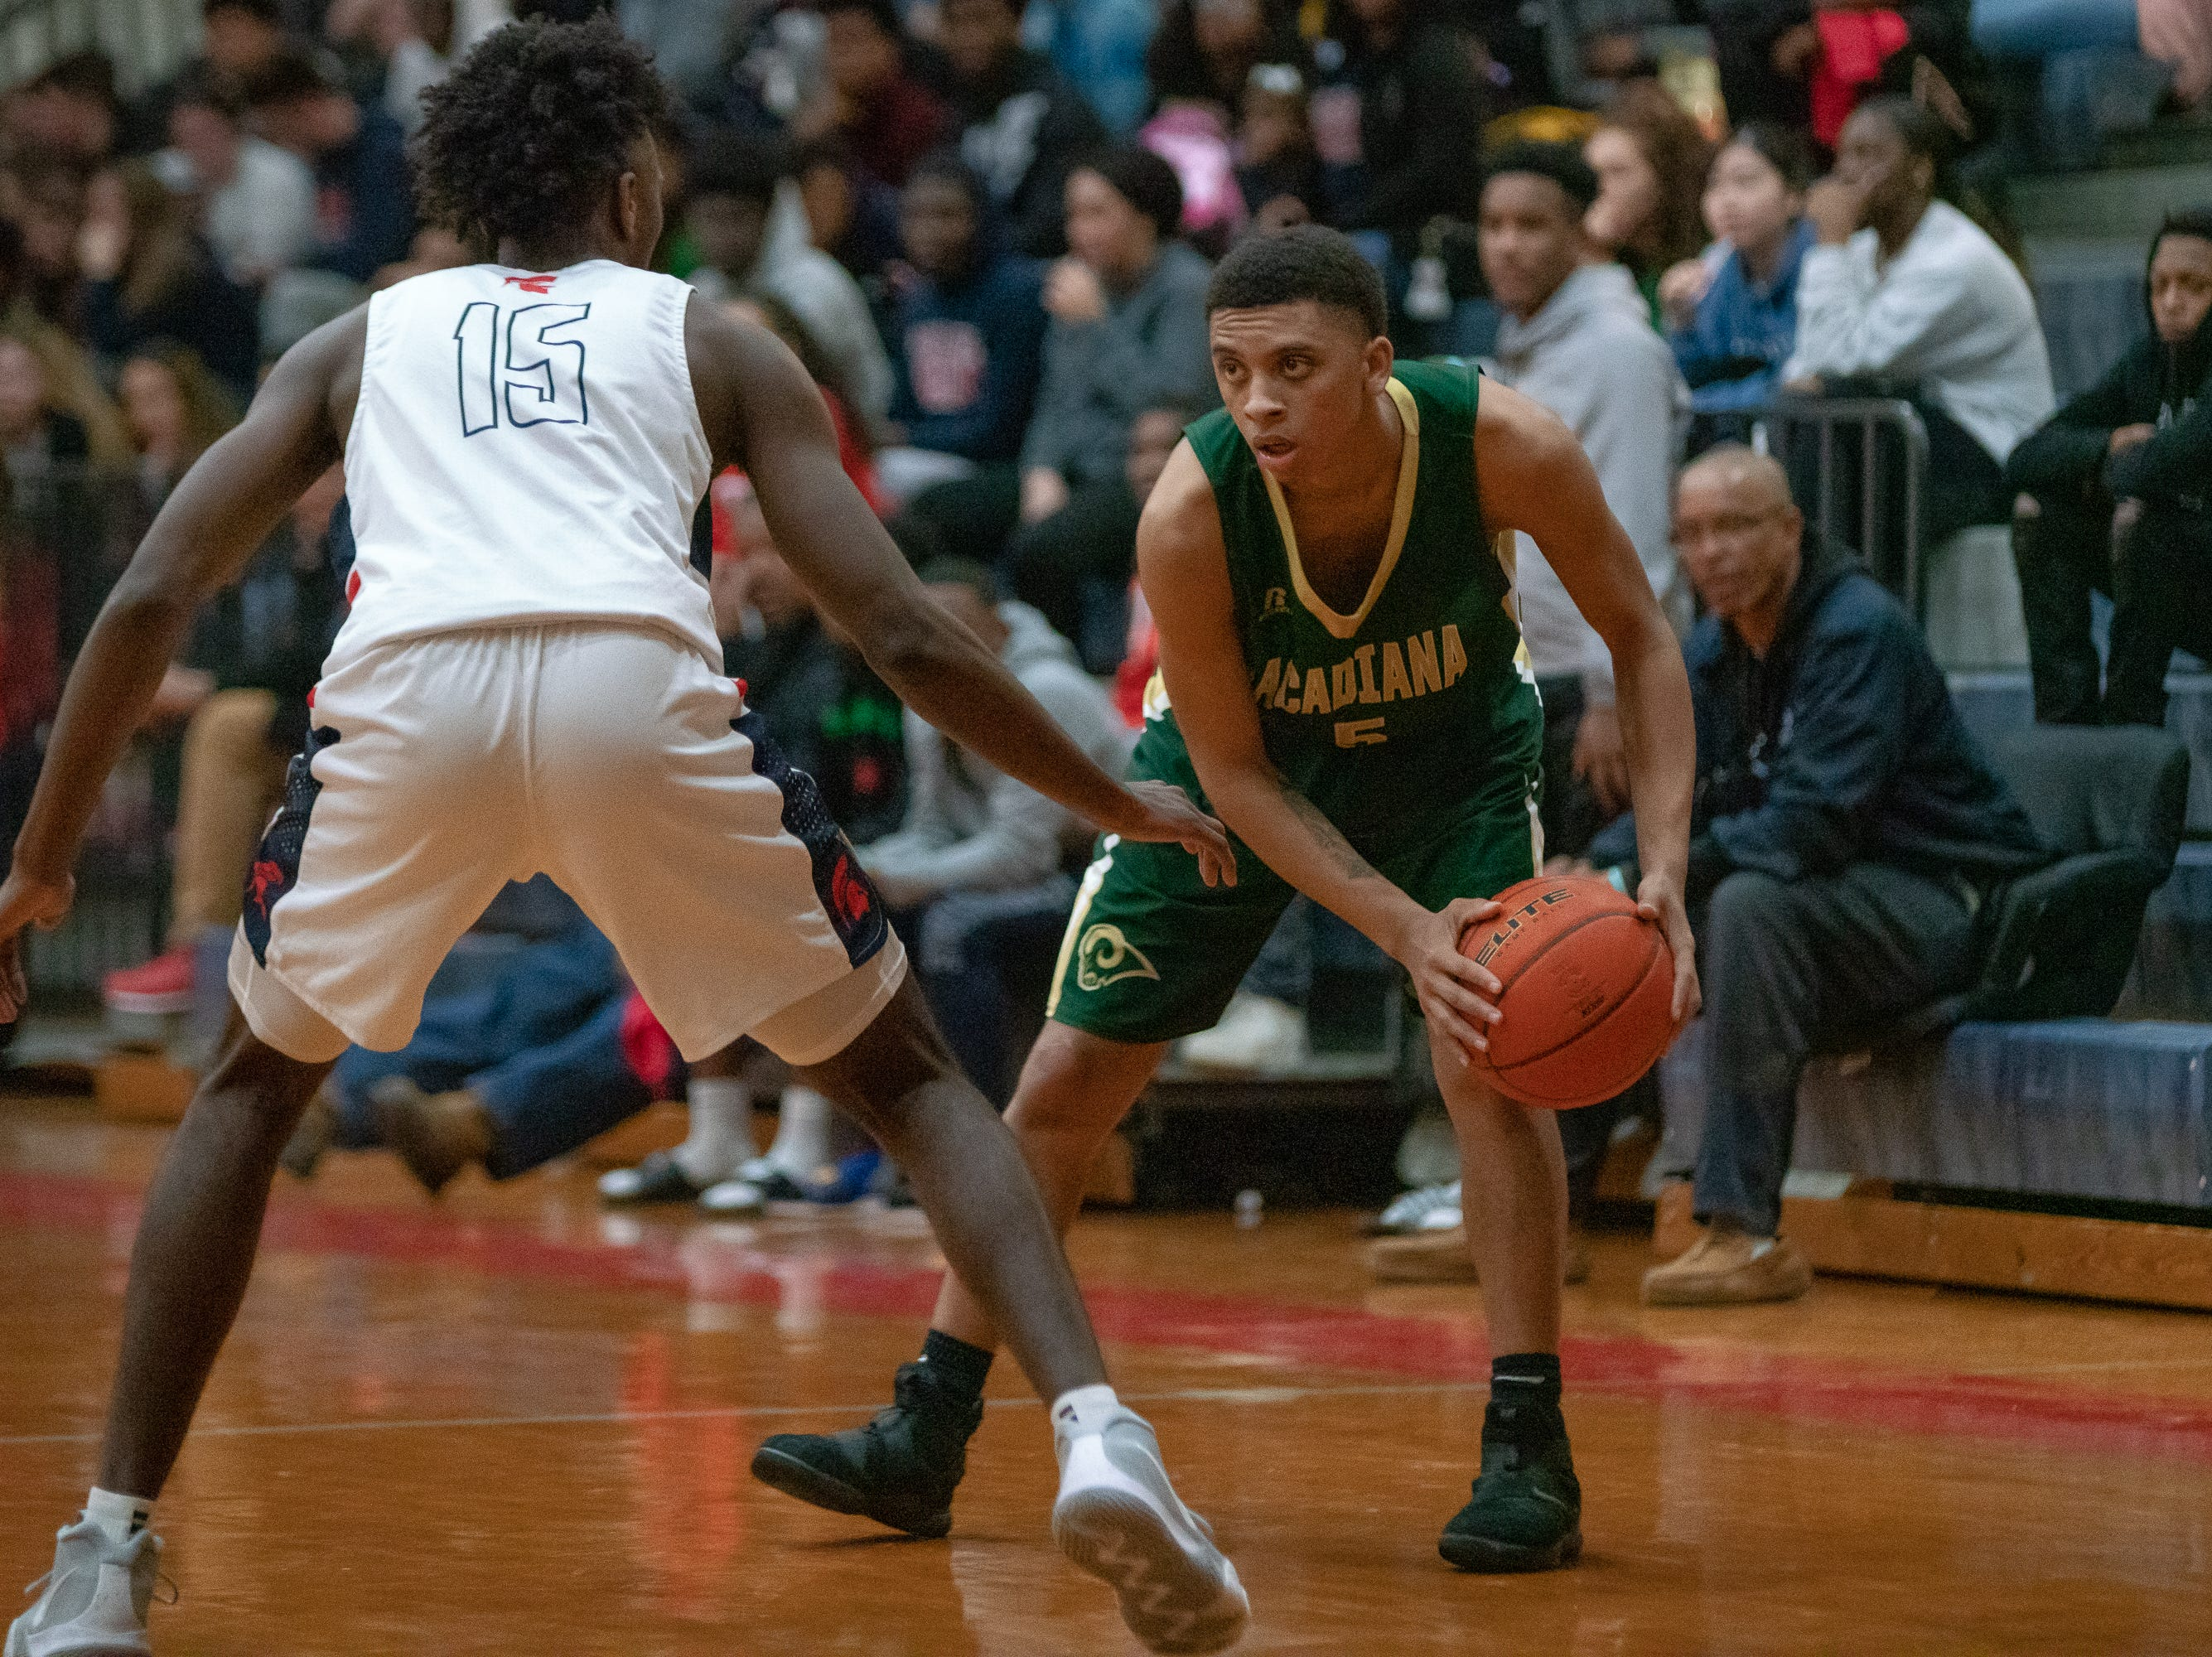 Acadiana High's Michael August (5) stares down his defender as the Comeaux High Spartans take on the Acadiana High Wreckin' Rams at Comeaux High School on Jan. 25, 2019.